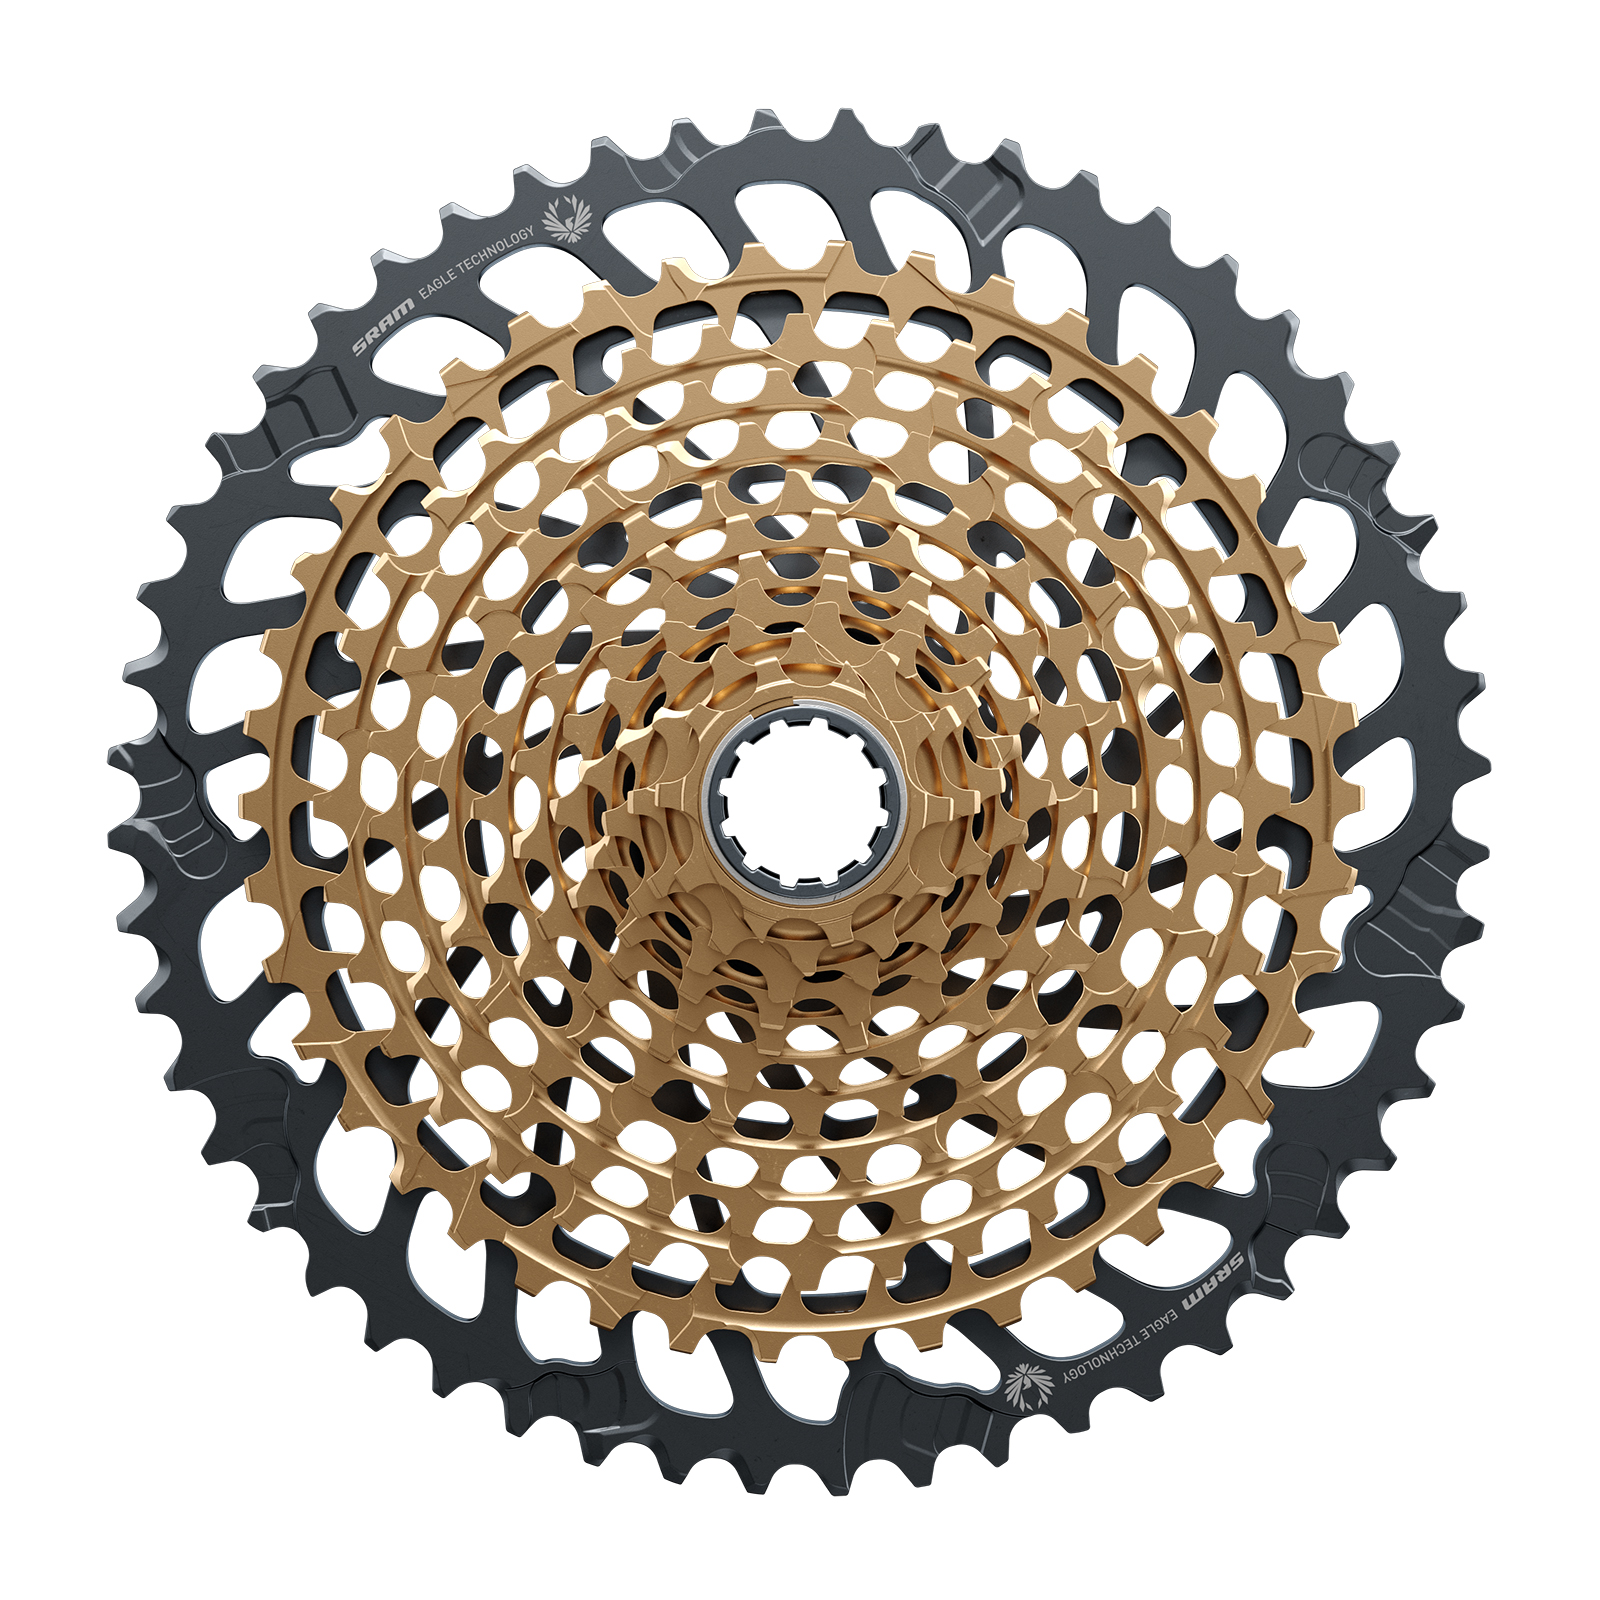 The only change to the Eagle Expanded Range cassette is the addition of the 52-tooth cog. The remaining 11 cogs have the same steps between gears as the 10-50T cassettes.